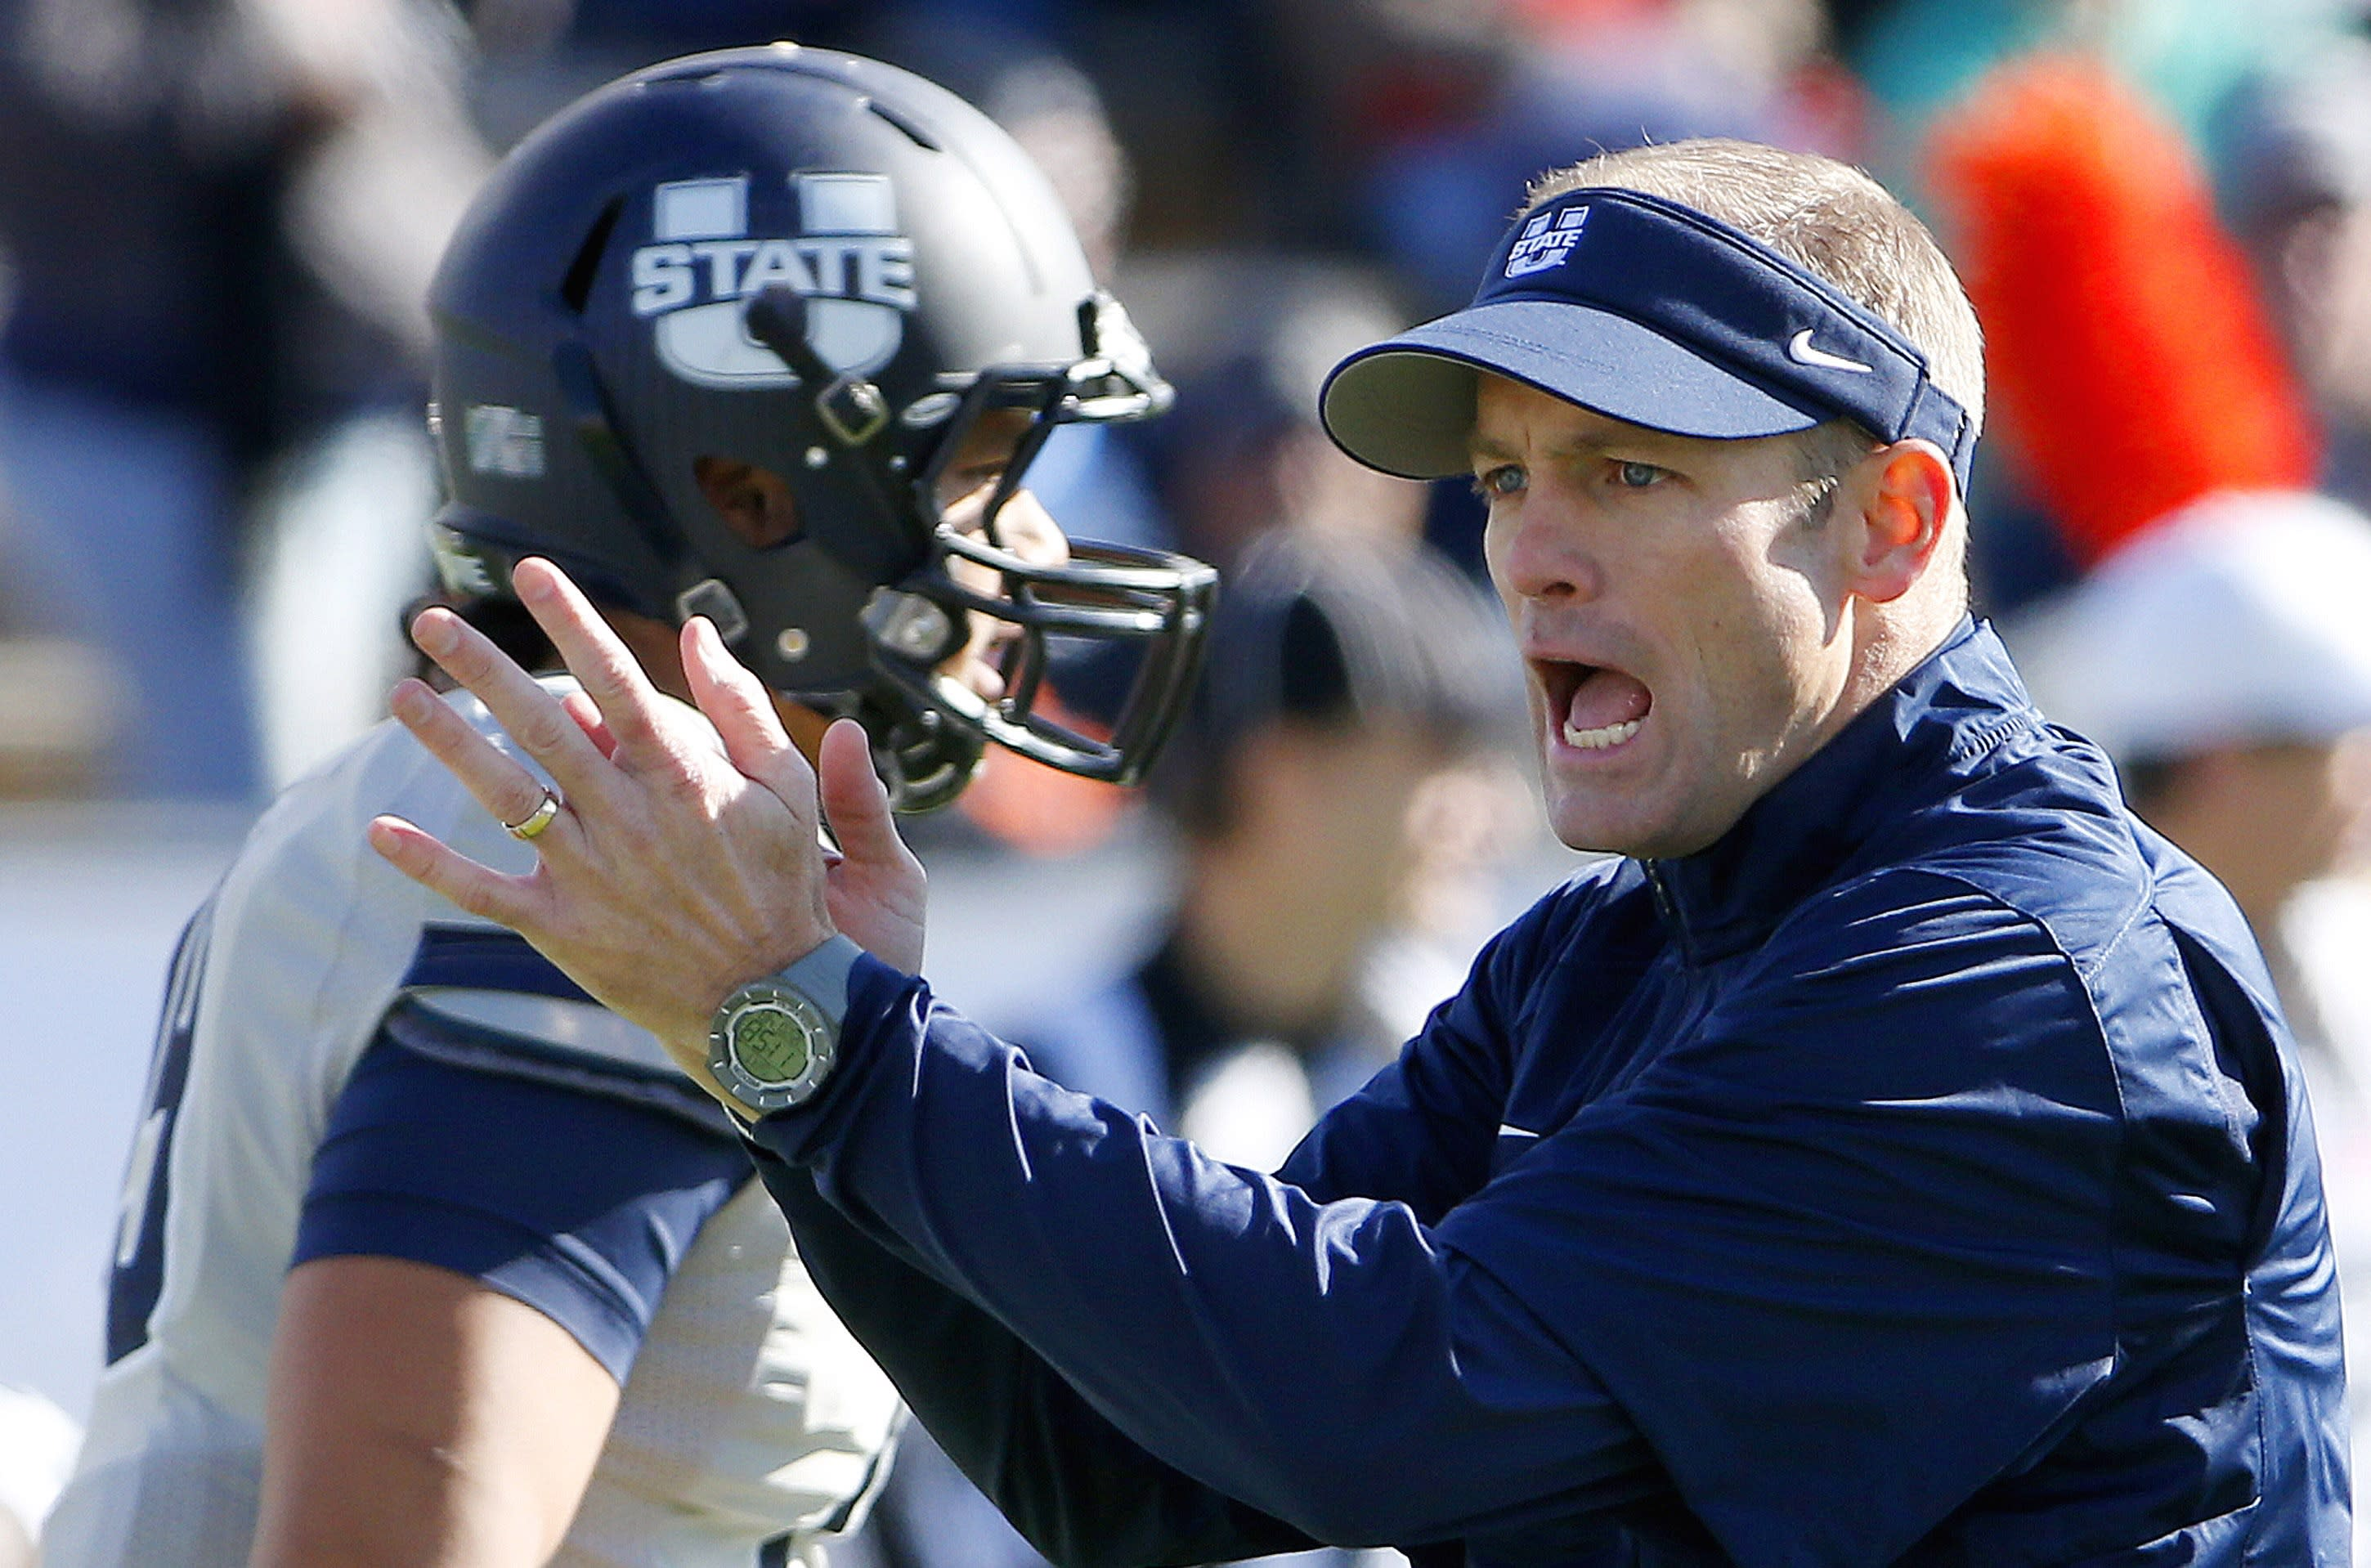 Utah State beats UTEP 21-6 in New Mexico Bowl